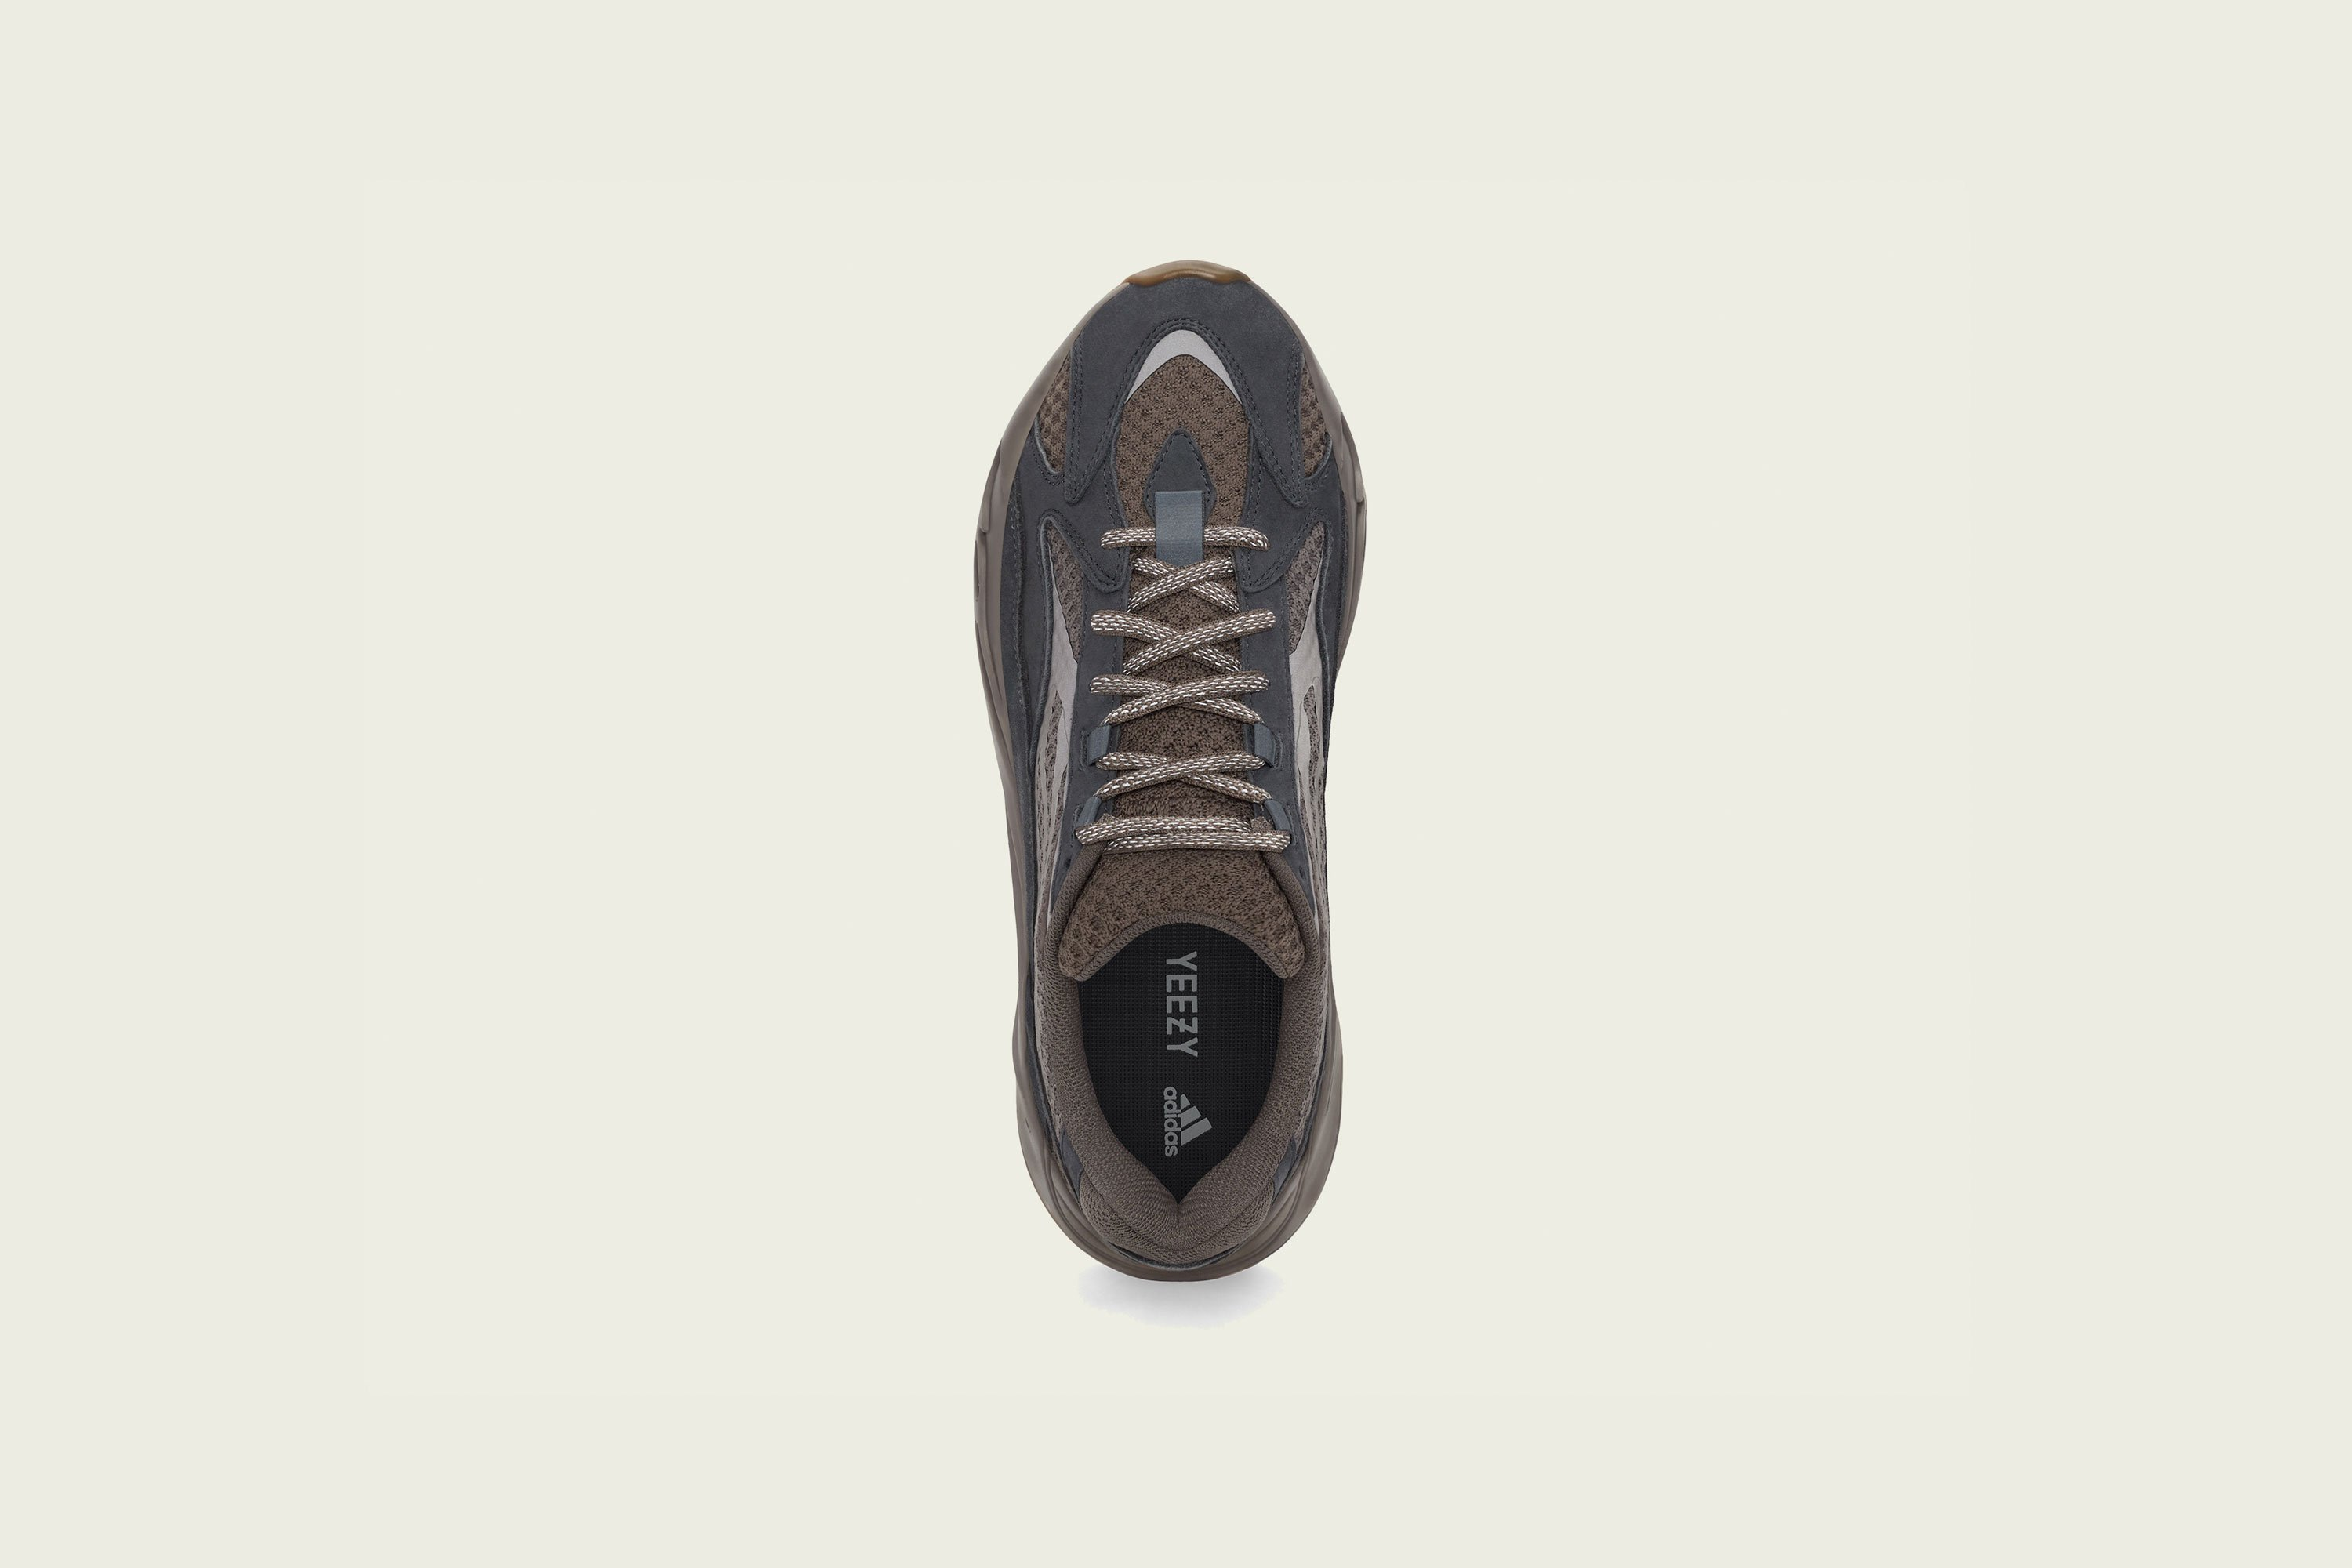 adidas - Yeezy Boost 700v2 - Mauve - Up There